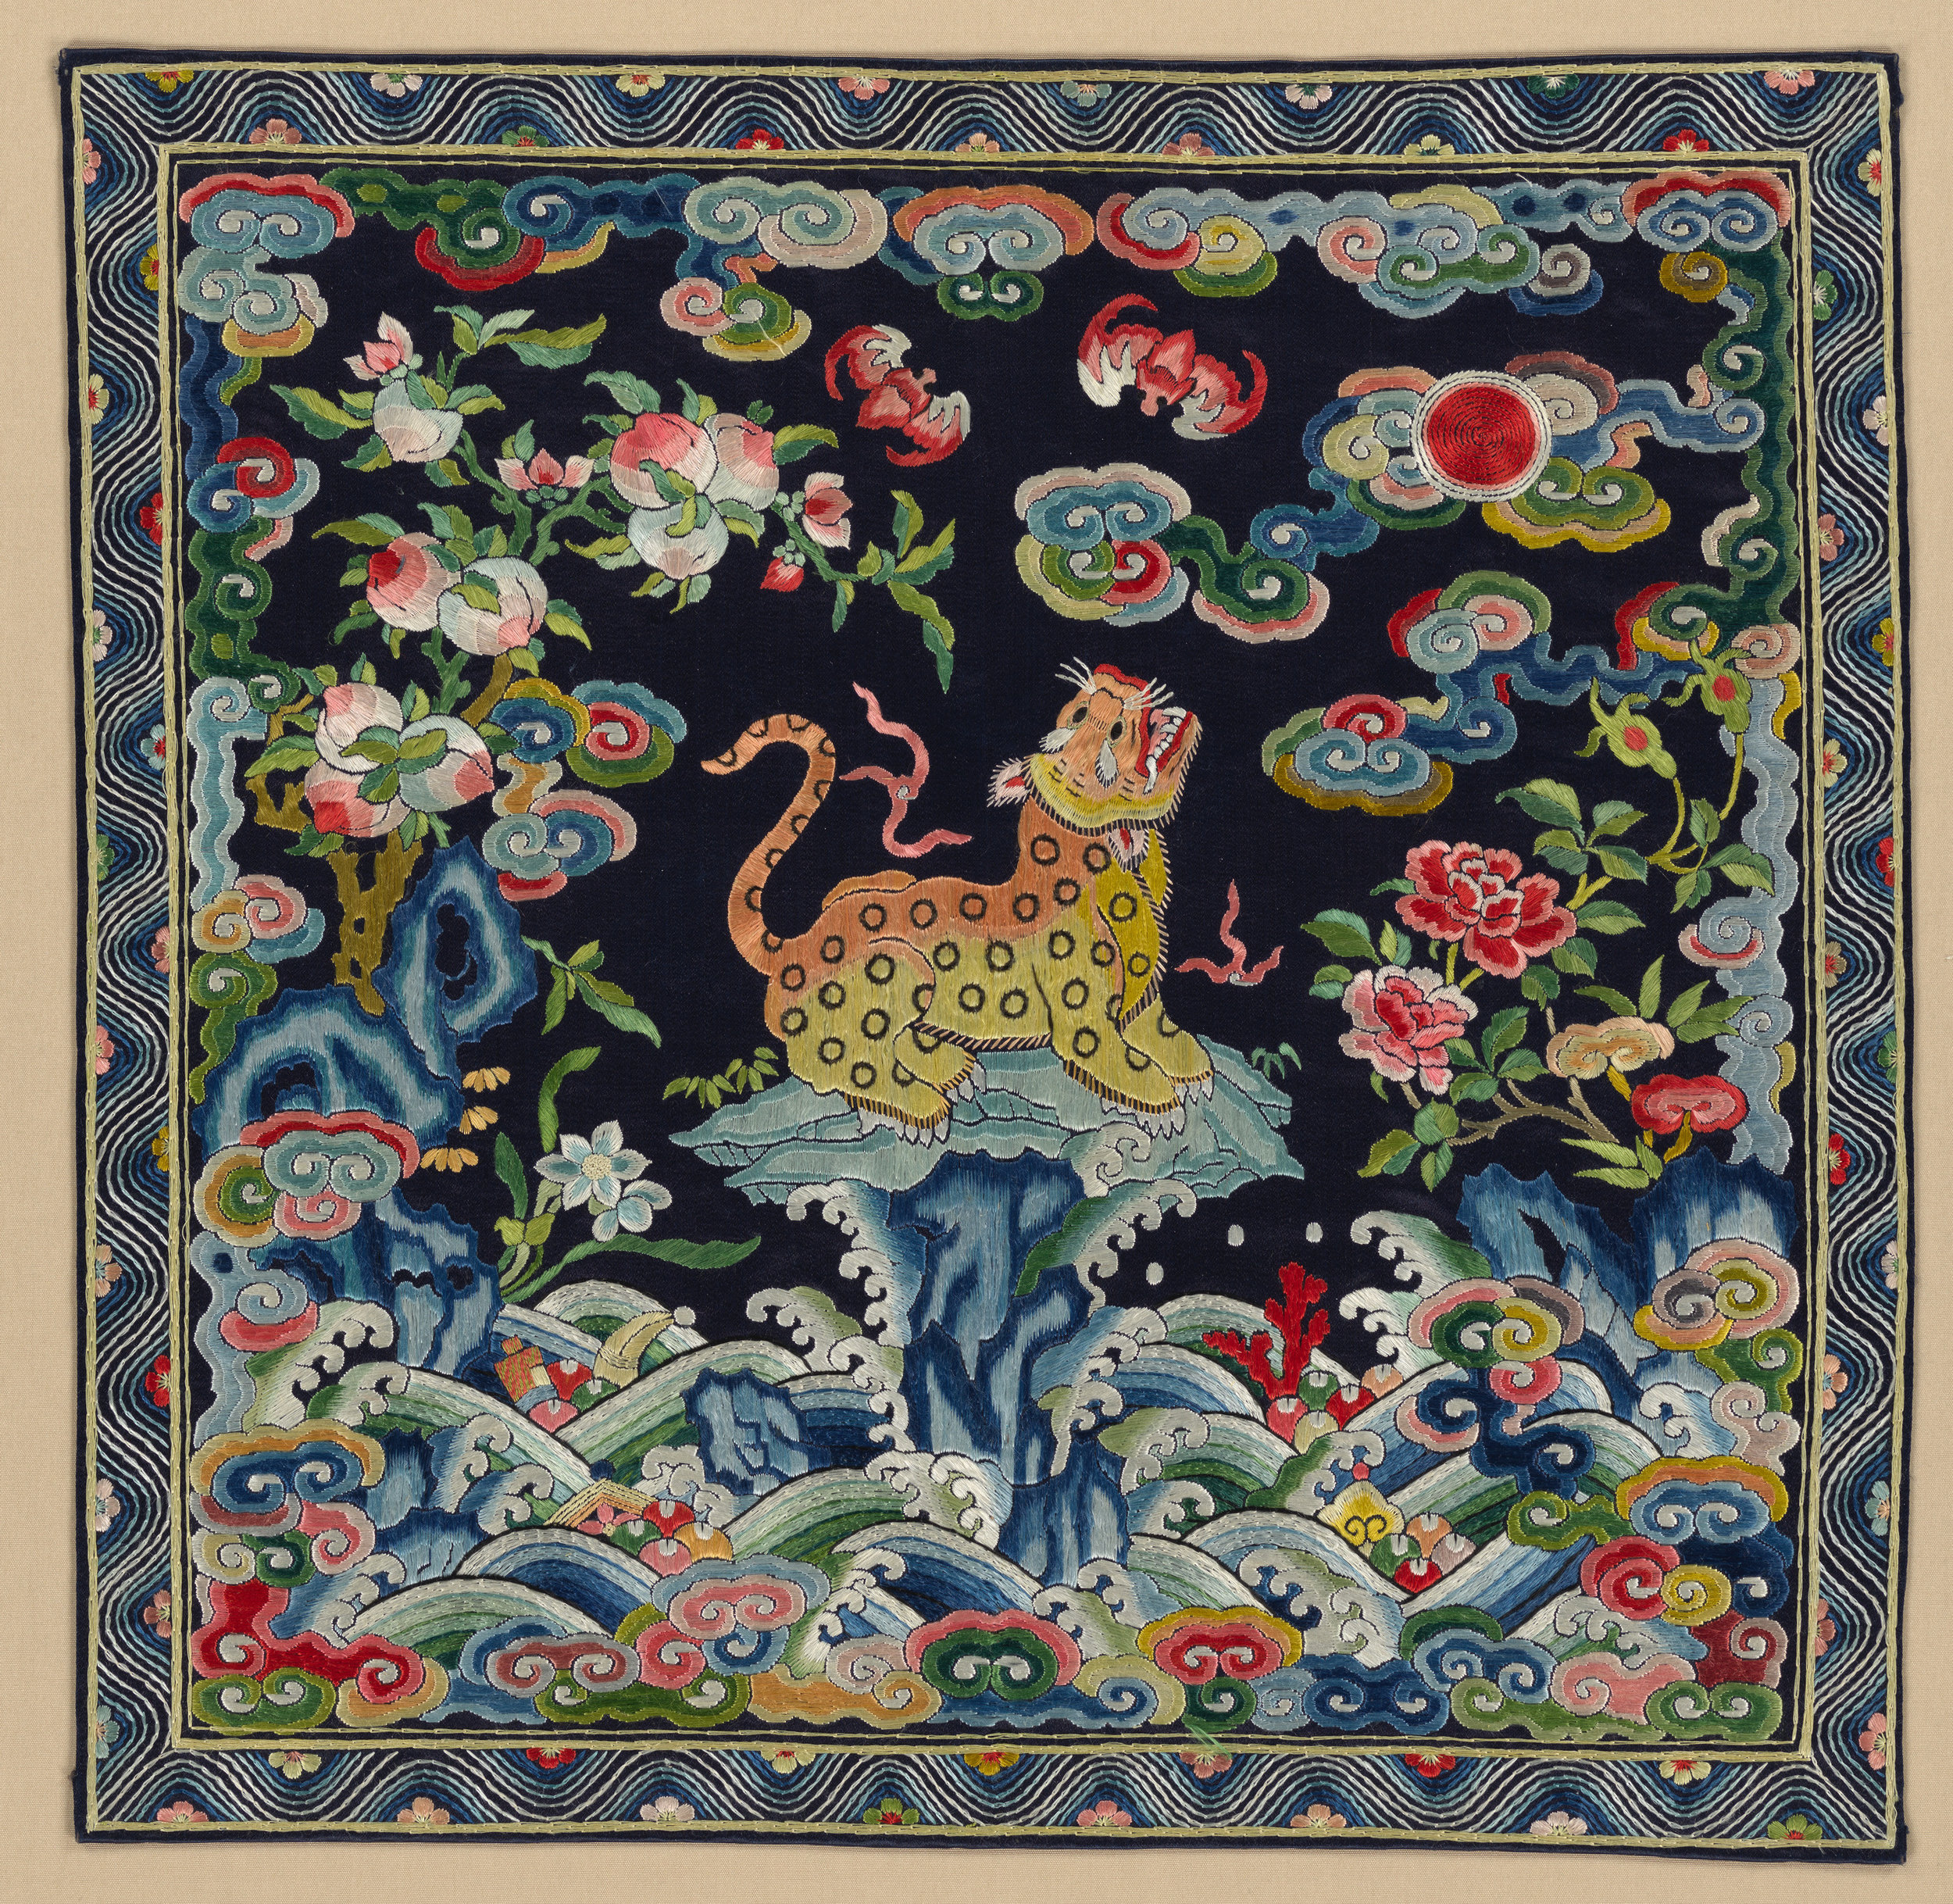 Leopard badge (3rd military rank) from the 19th century, Qing dynasty. Collection of the Met.